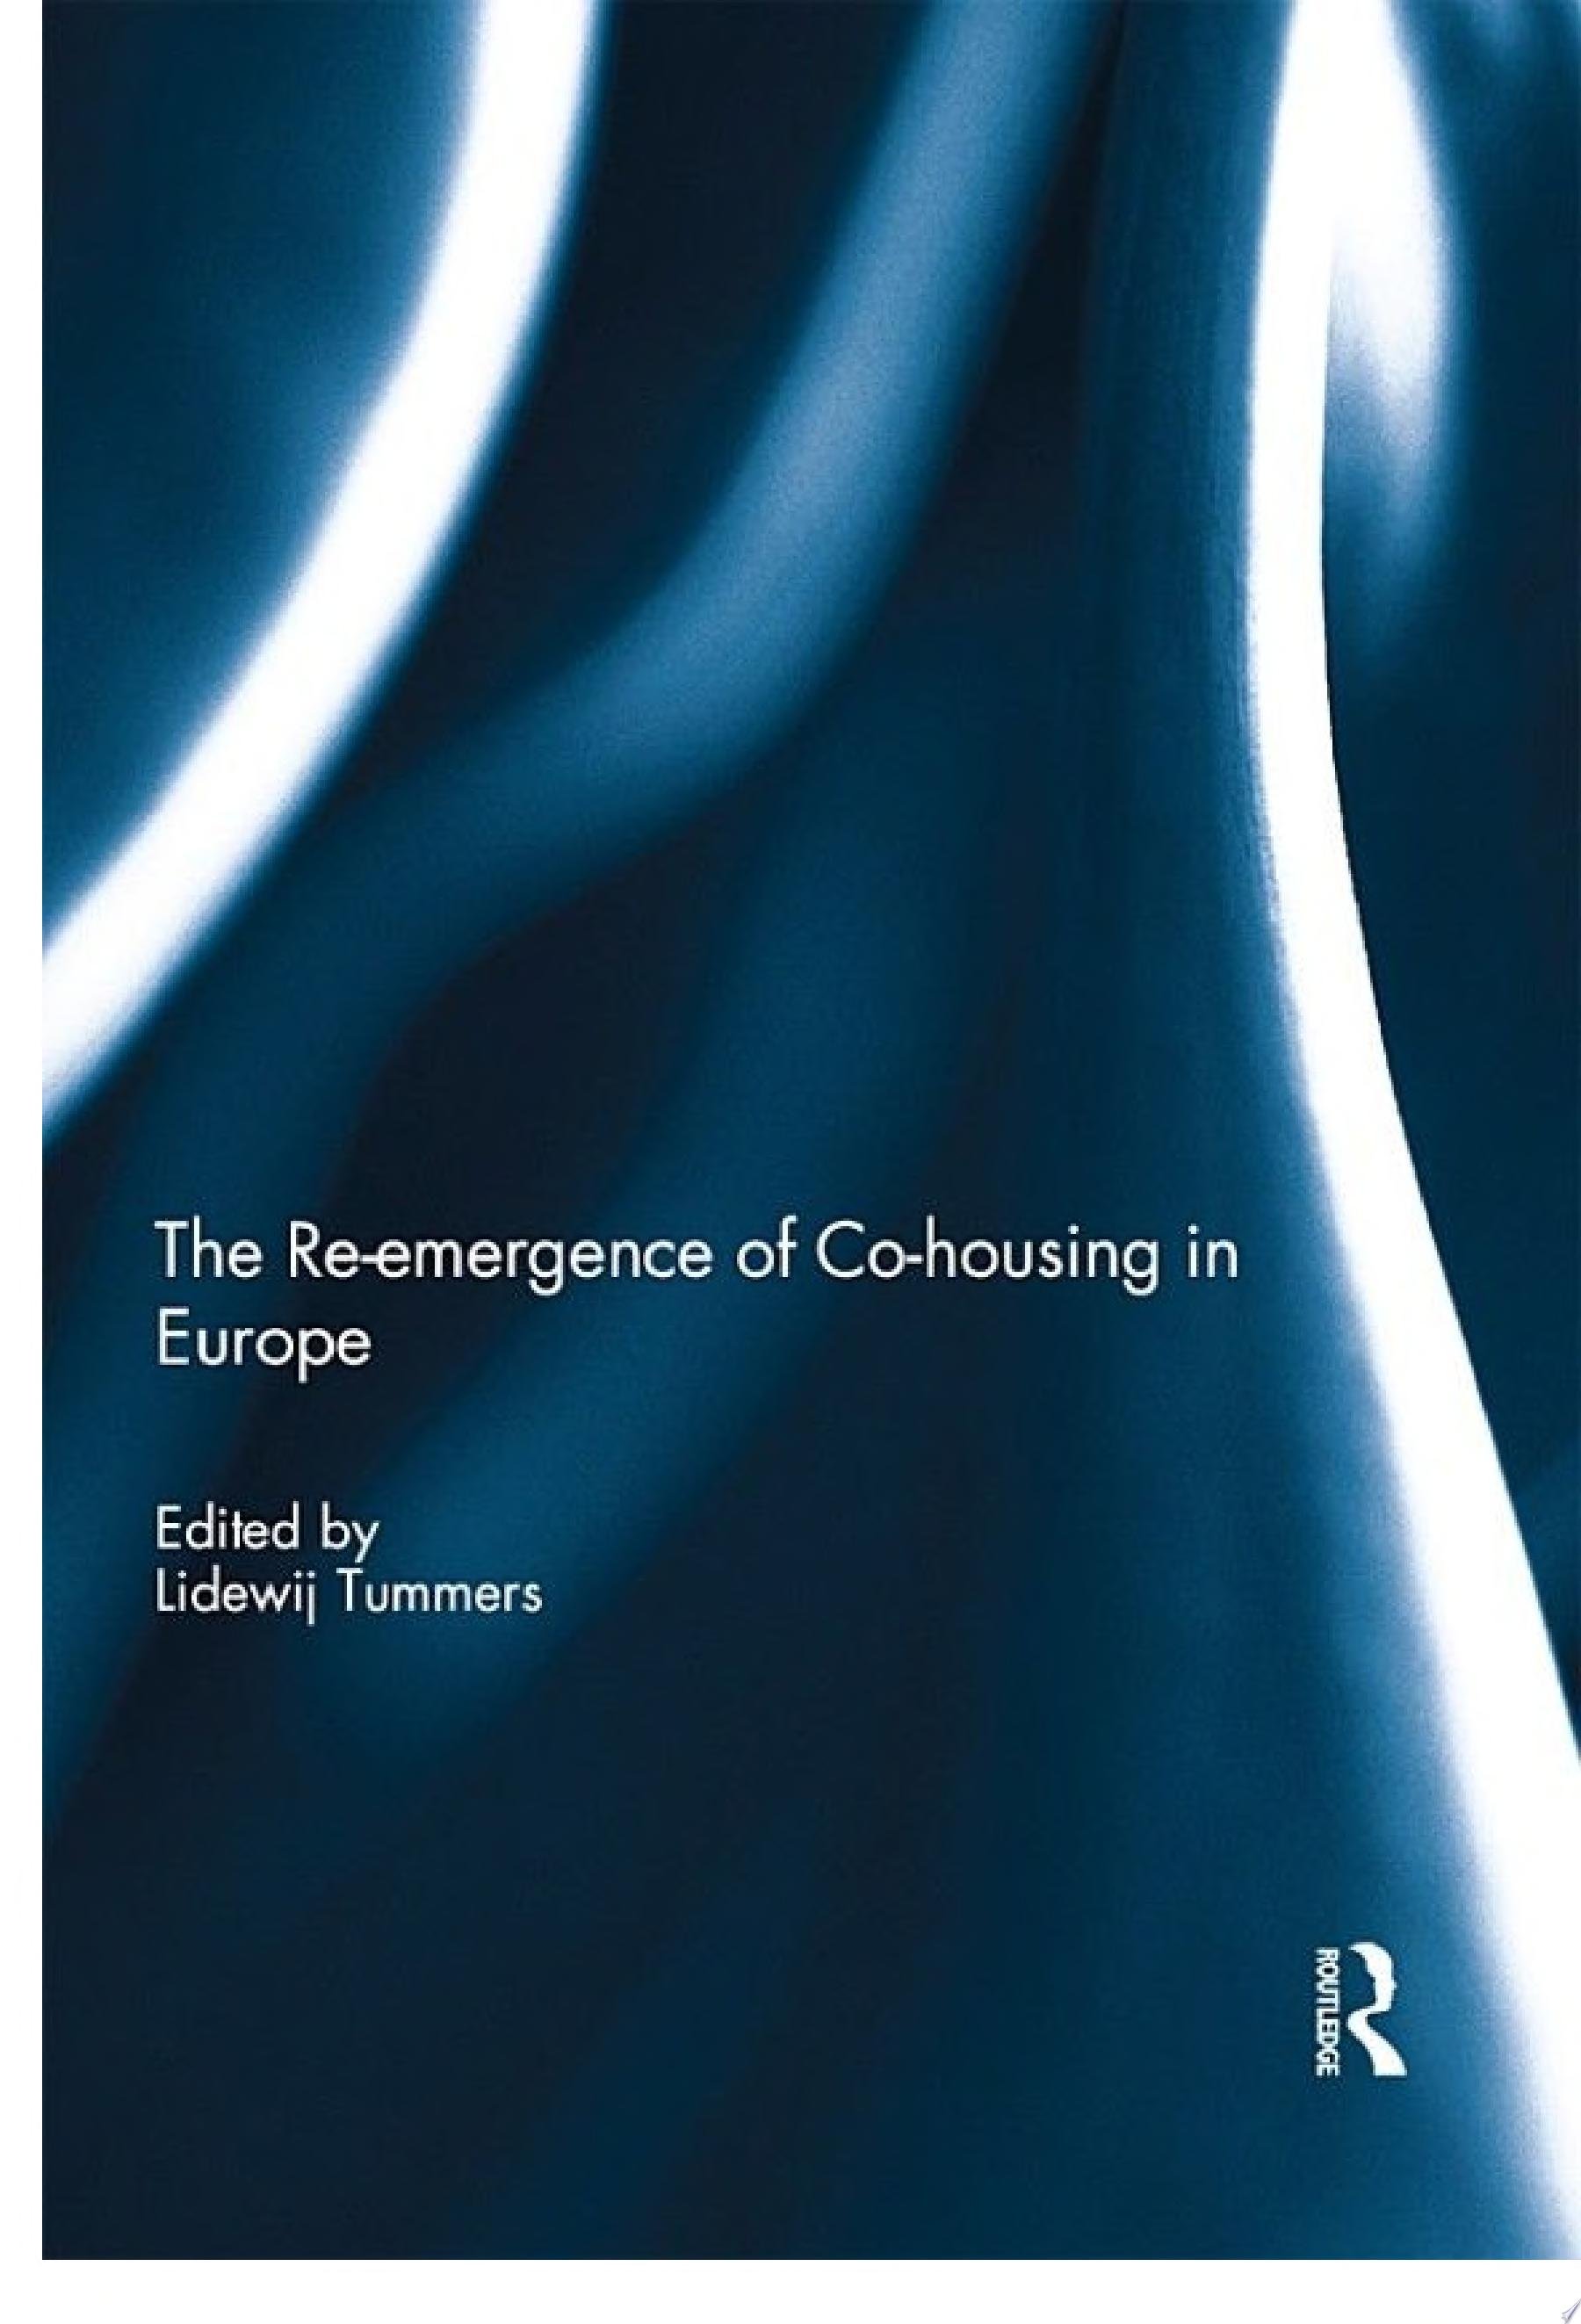 The re emergence of co housing in Europe